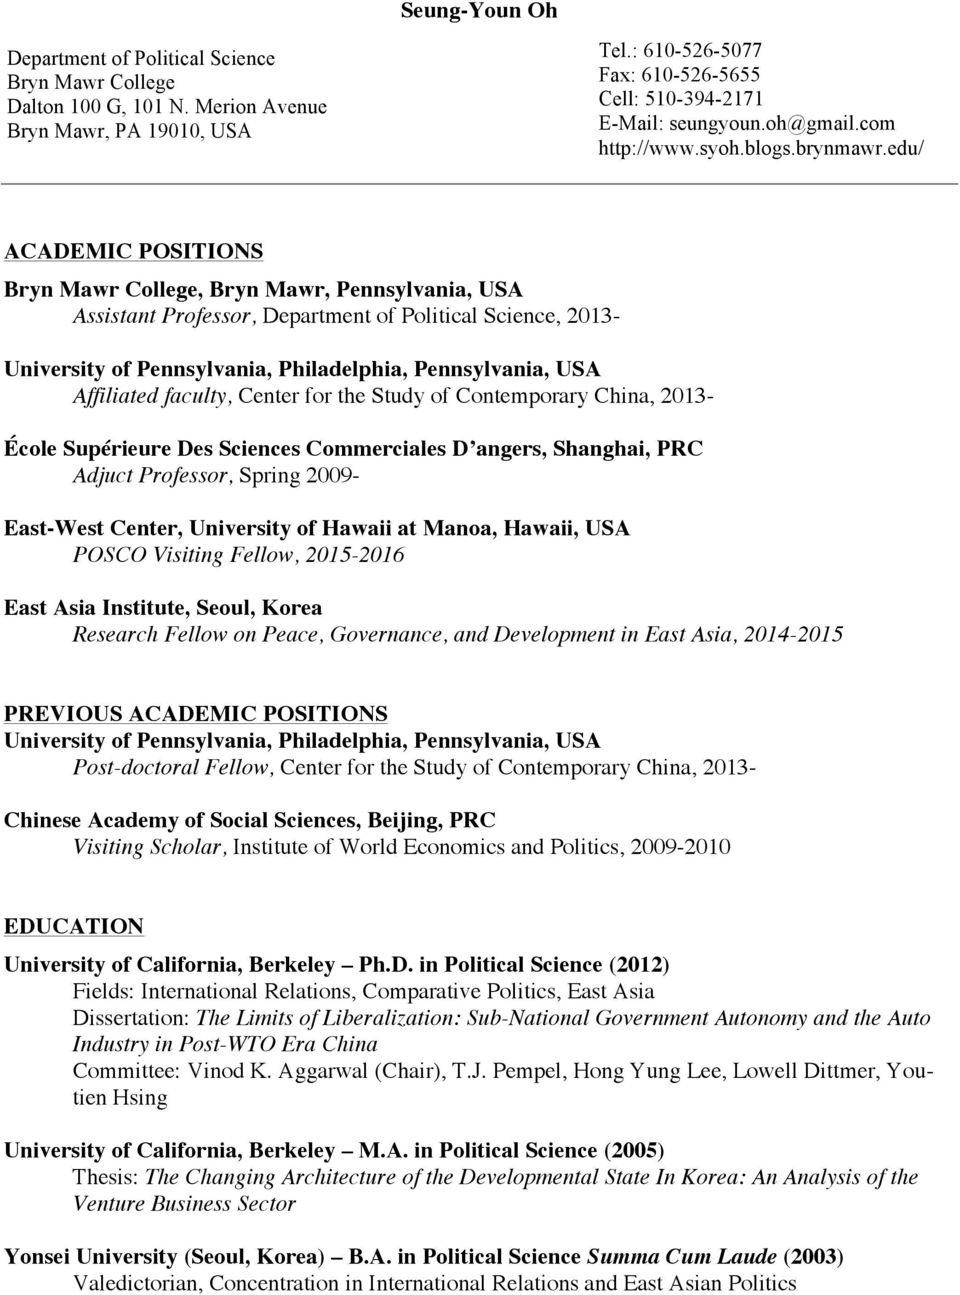 edu/ ACADEMIC POSITIONS Bryn Mawr College, Bryn Mawr, Pennsylvania, USA Assistant Professor, Department of Political Science, 2013- University of Pennsylvania, Philadelphia, Pennsylvania, USA